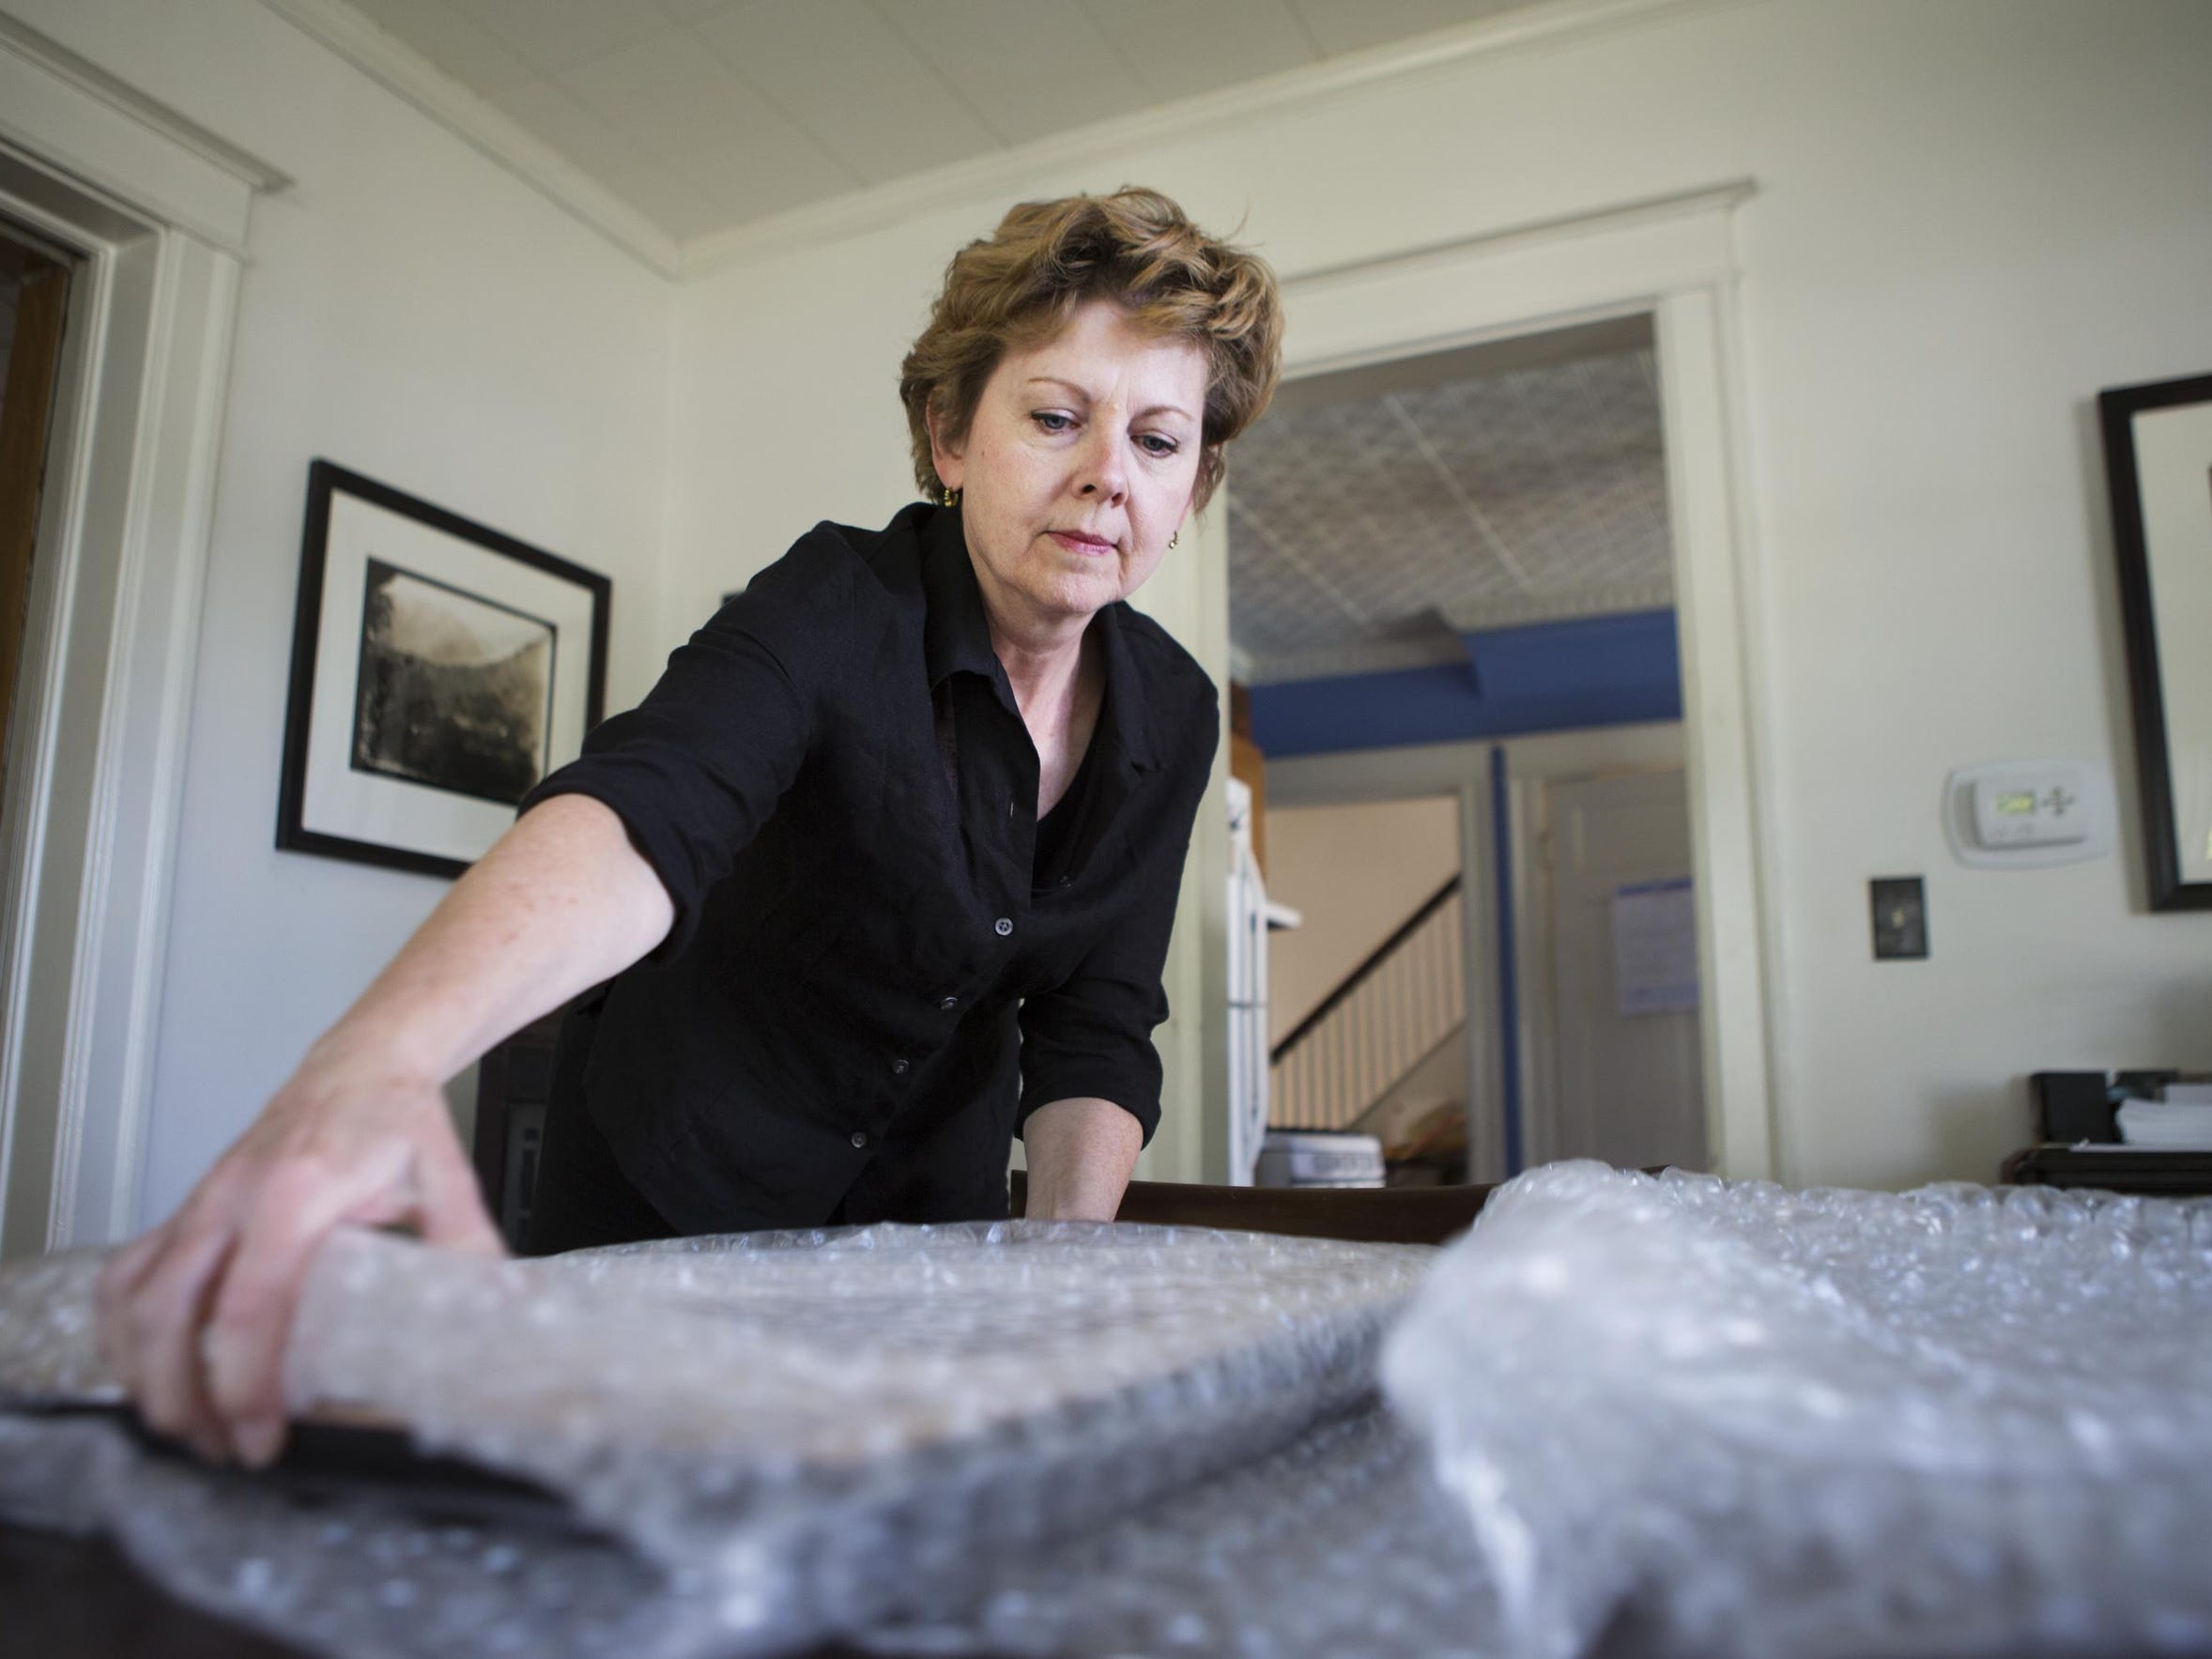 France Scully Osterman uses bubble wrap to pack a print